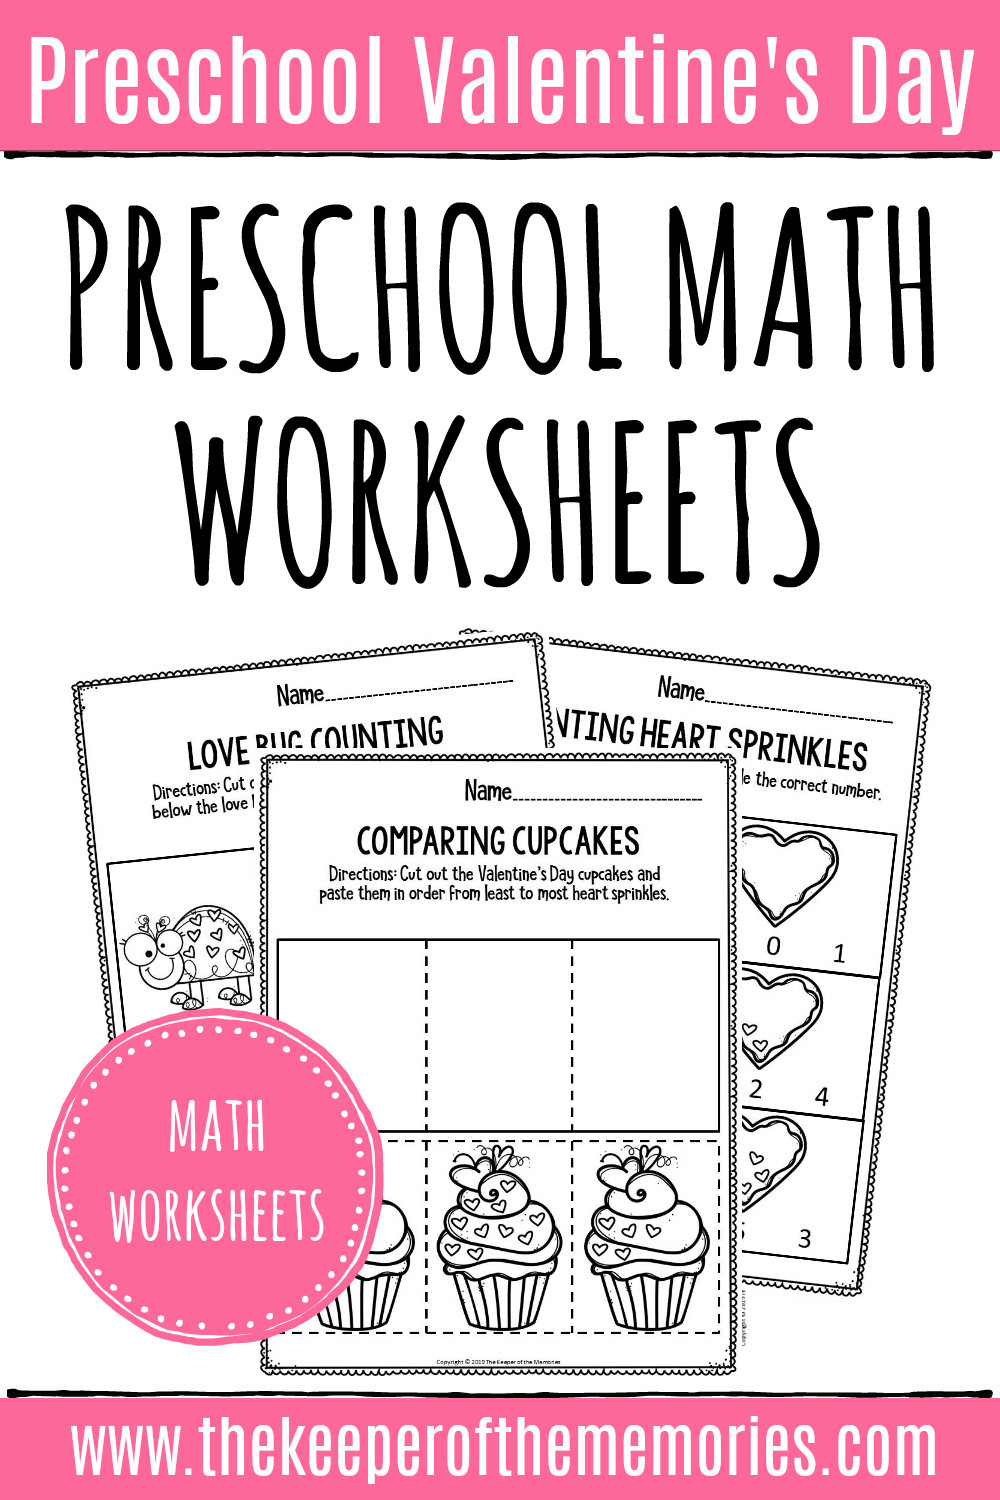 Preschool Addition Worksheets Printable Printable Math Valentine S Day Preschool Worksheets